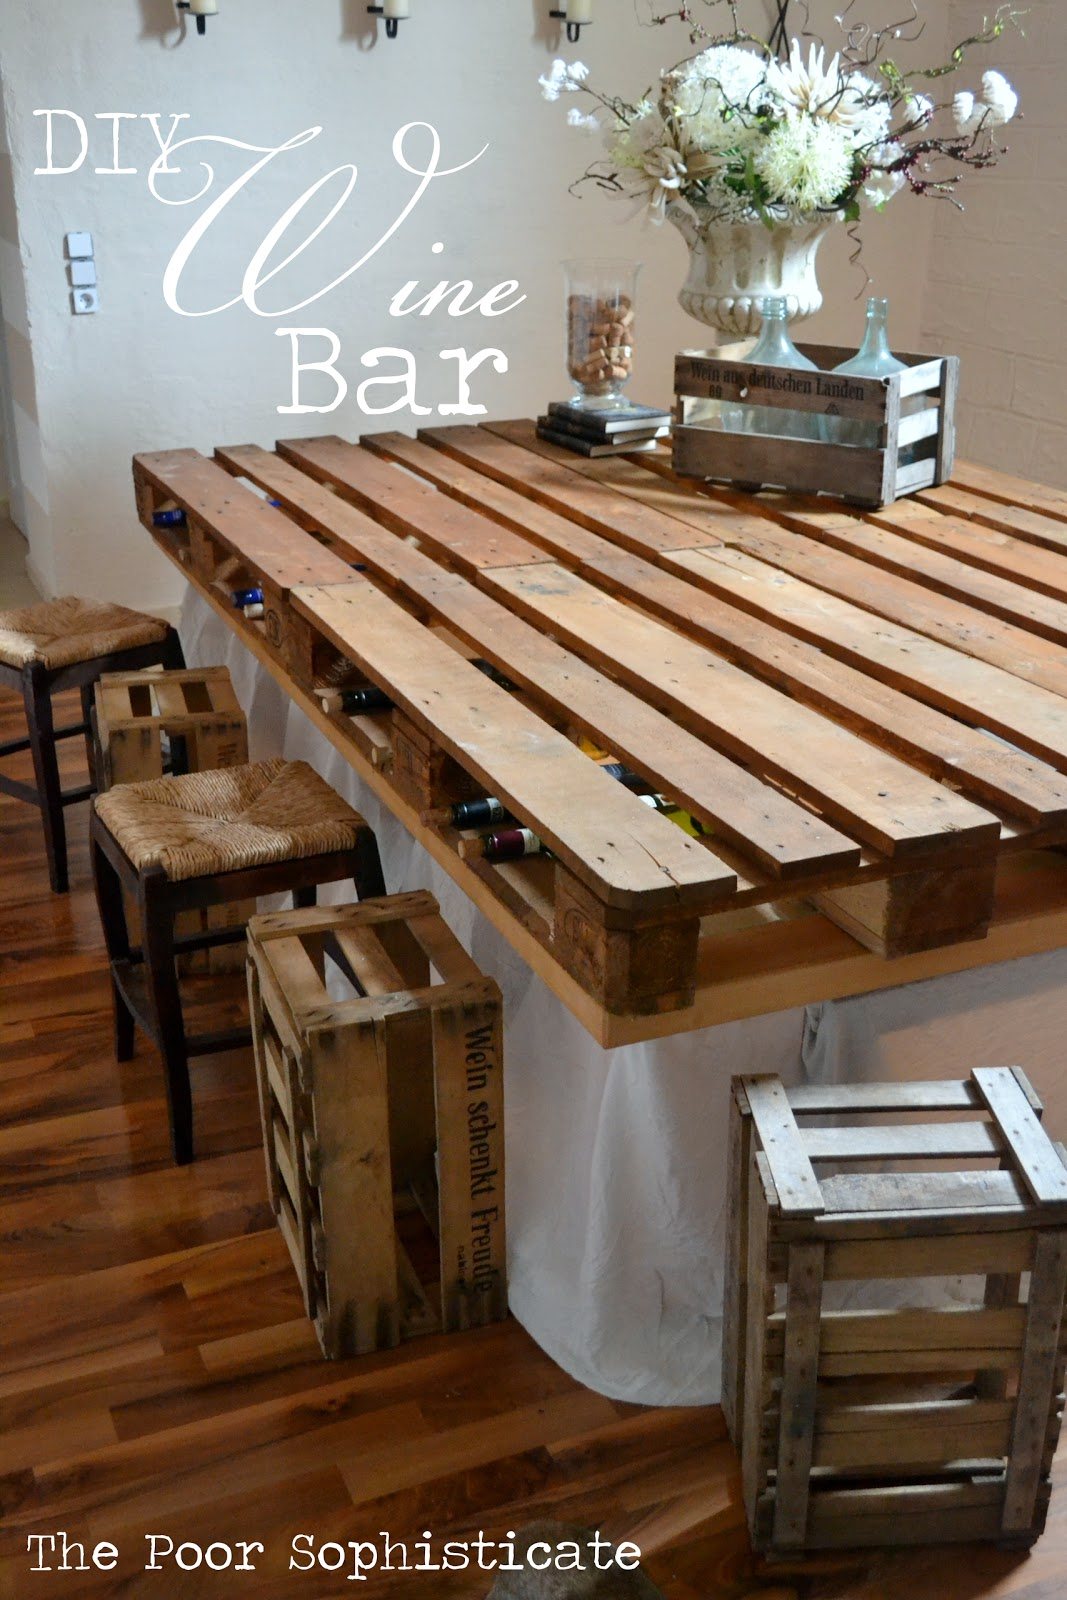 The Poor Sophisticate Completely Free Pallet Wine Bar